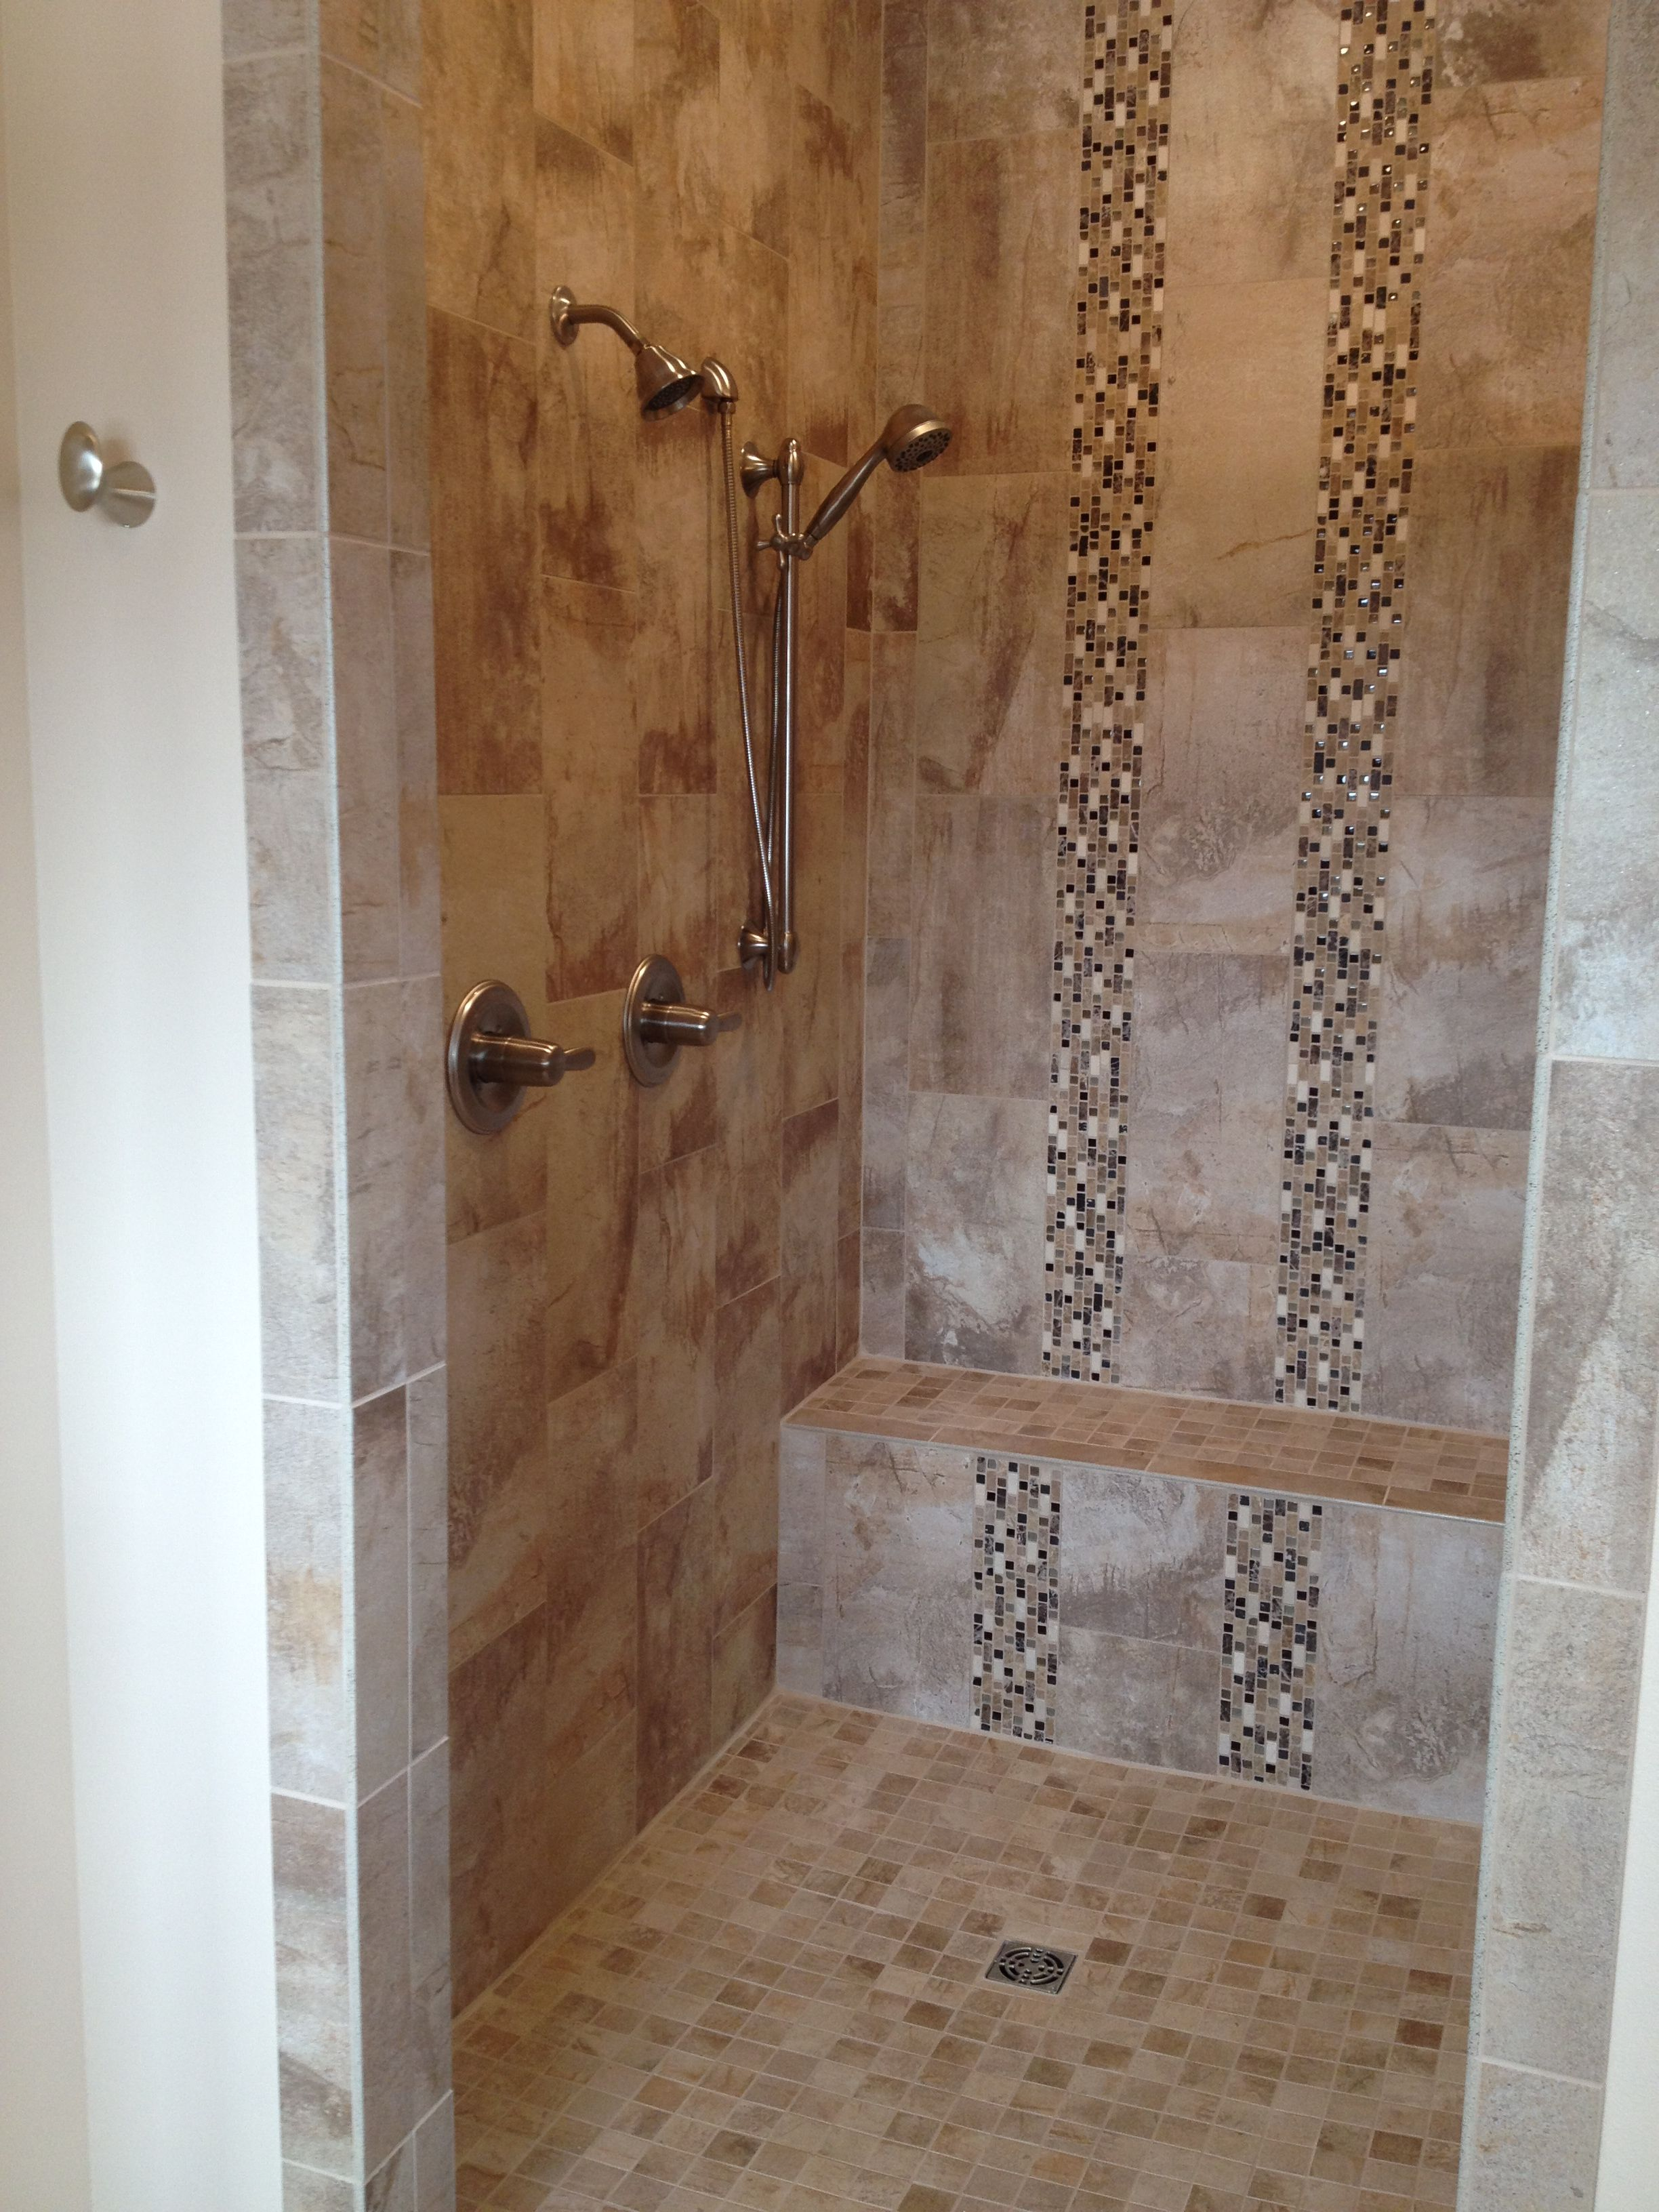 Gerard Homes Custom Tiled Shower With 10x20 Installed At A Vertical Staggered Pattern Accompa Shower Tile Small Bathroom With Shower Small Bathroom Pictures